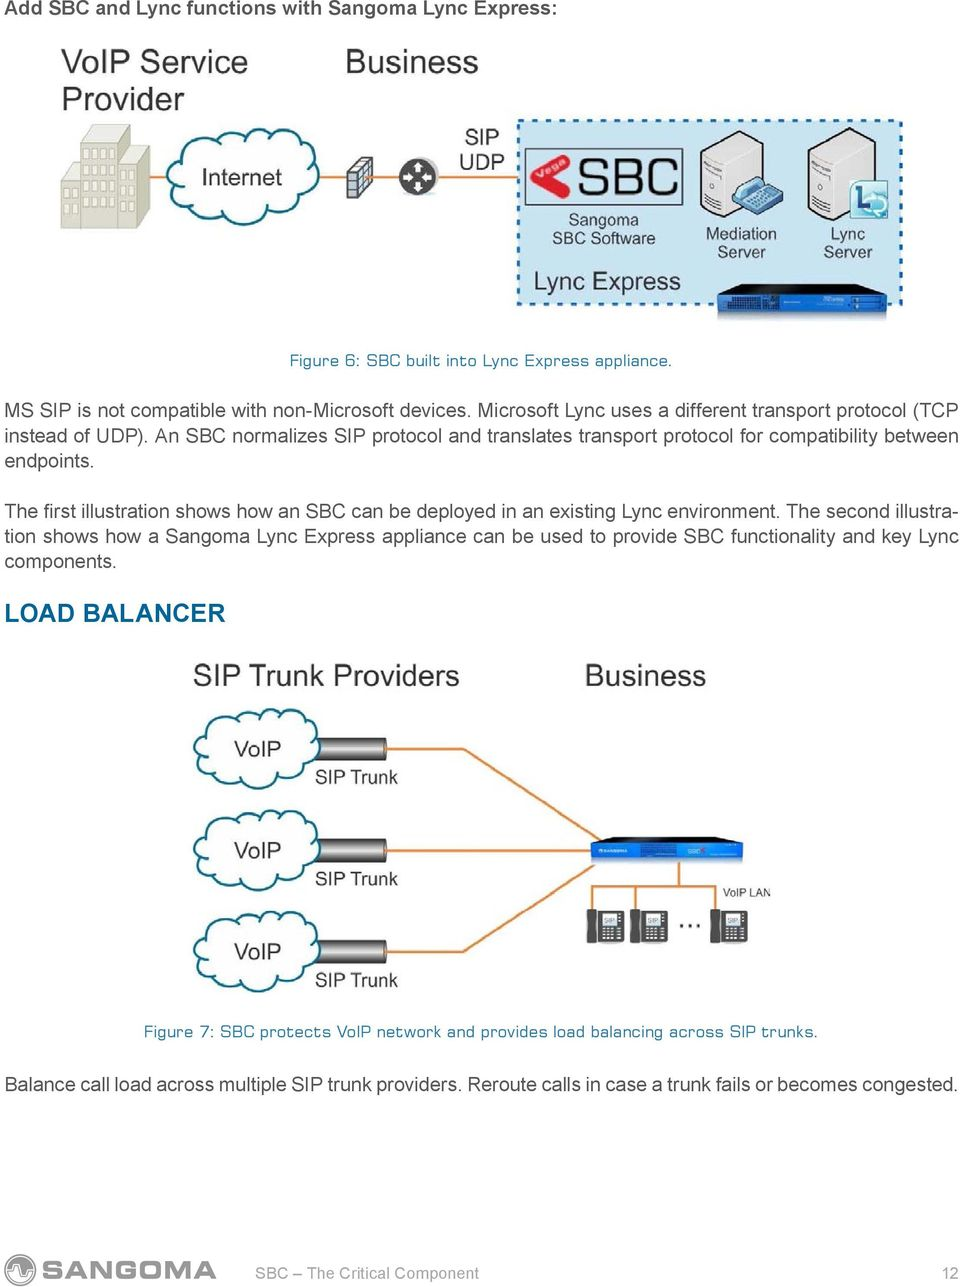 The first illustration shows how an SBC can be deployed in an existing Lync environment.